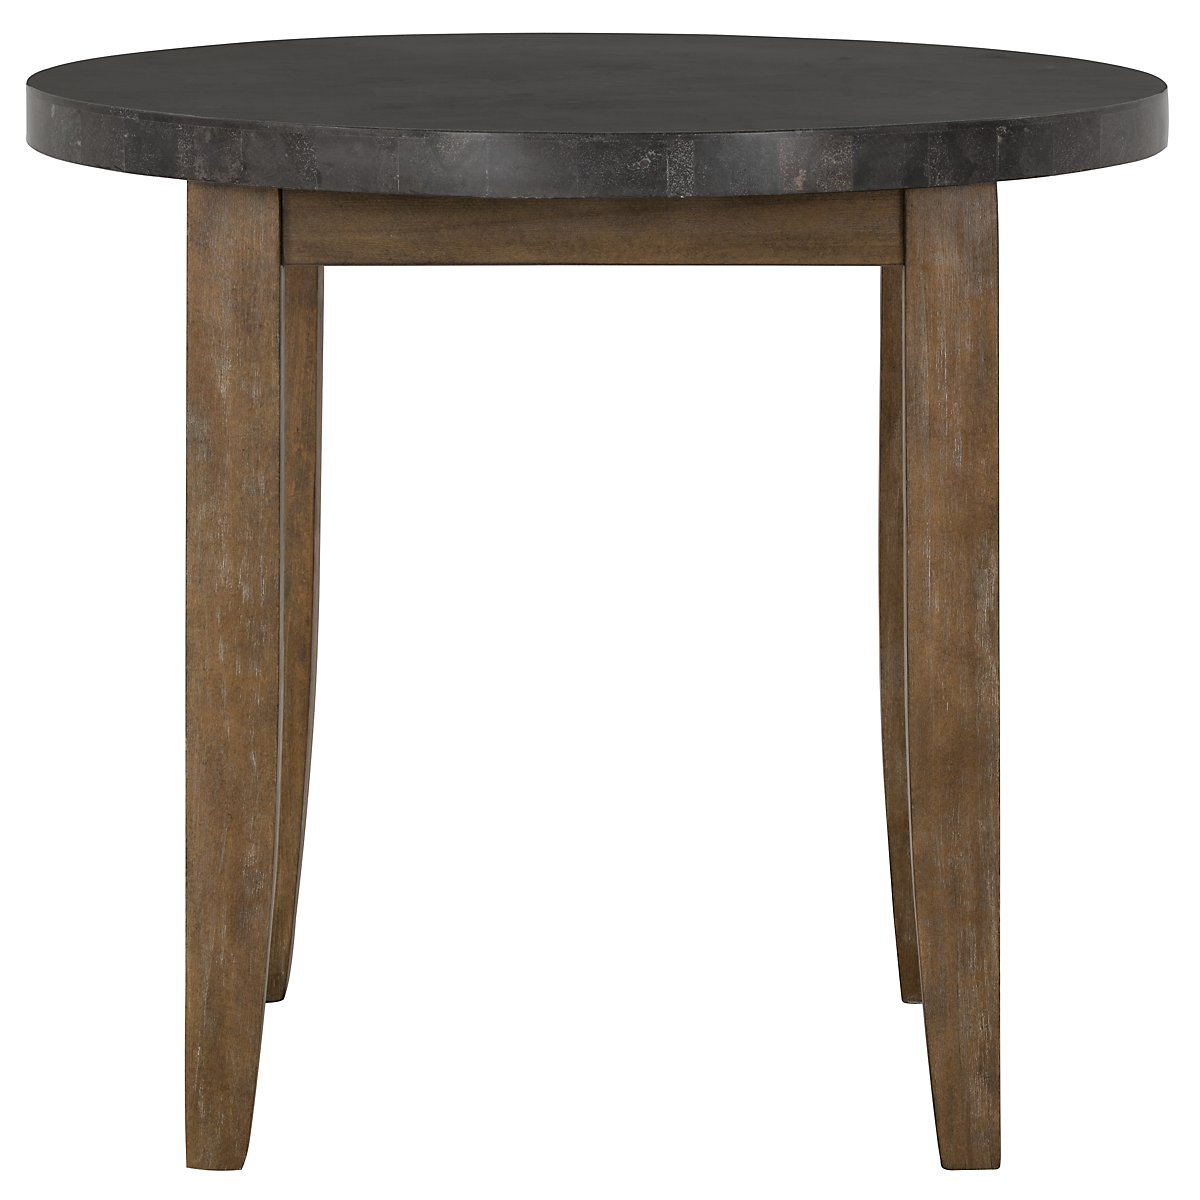 City furniture emmett stone round high dining table for Round table 85 ortenau